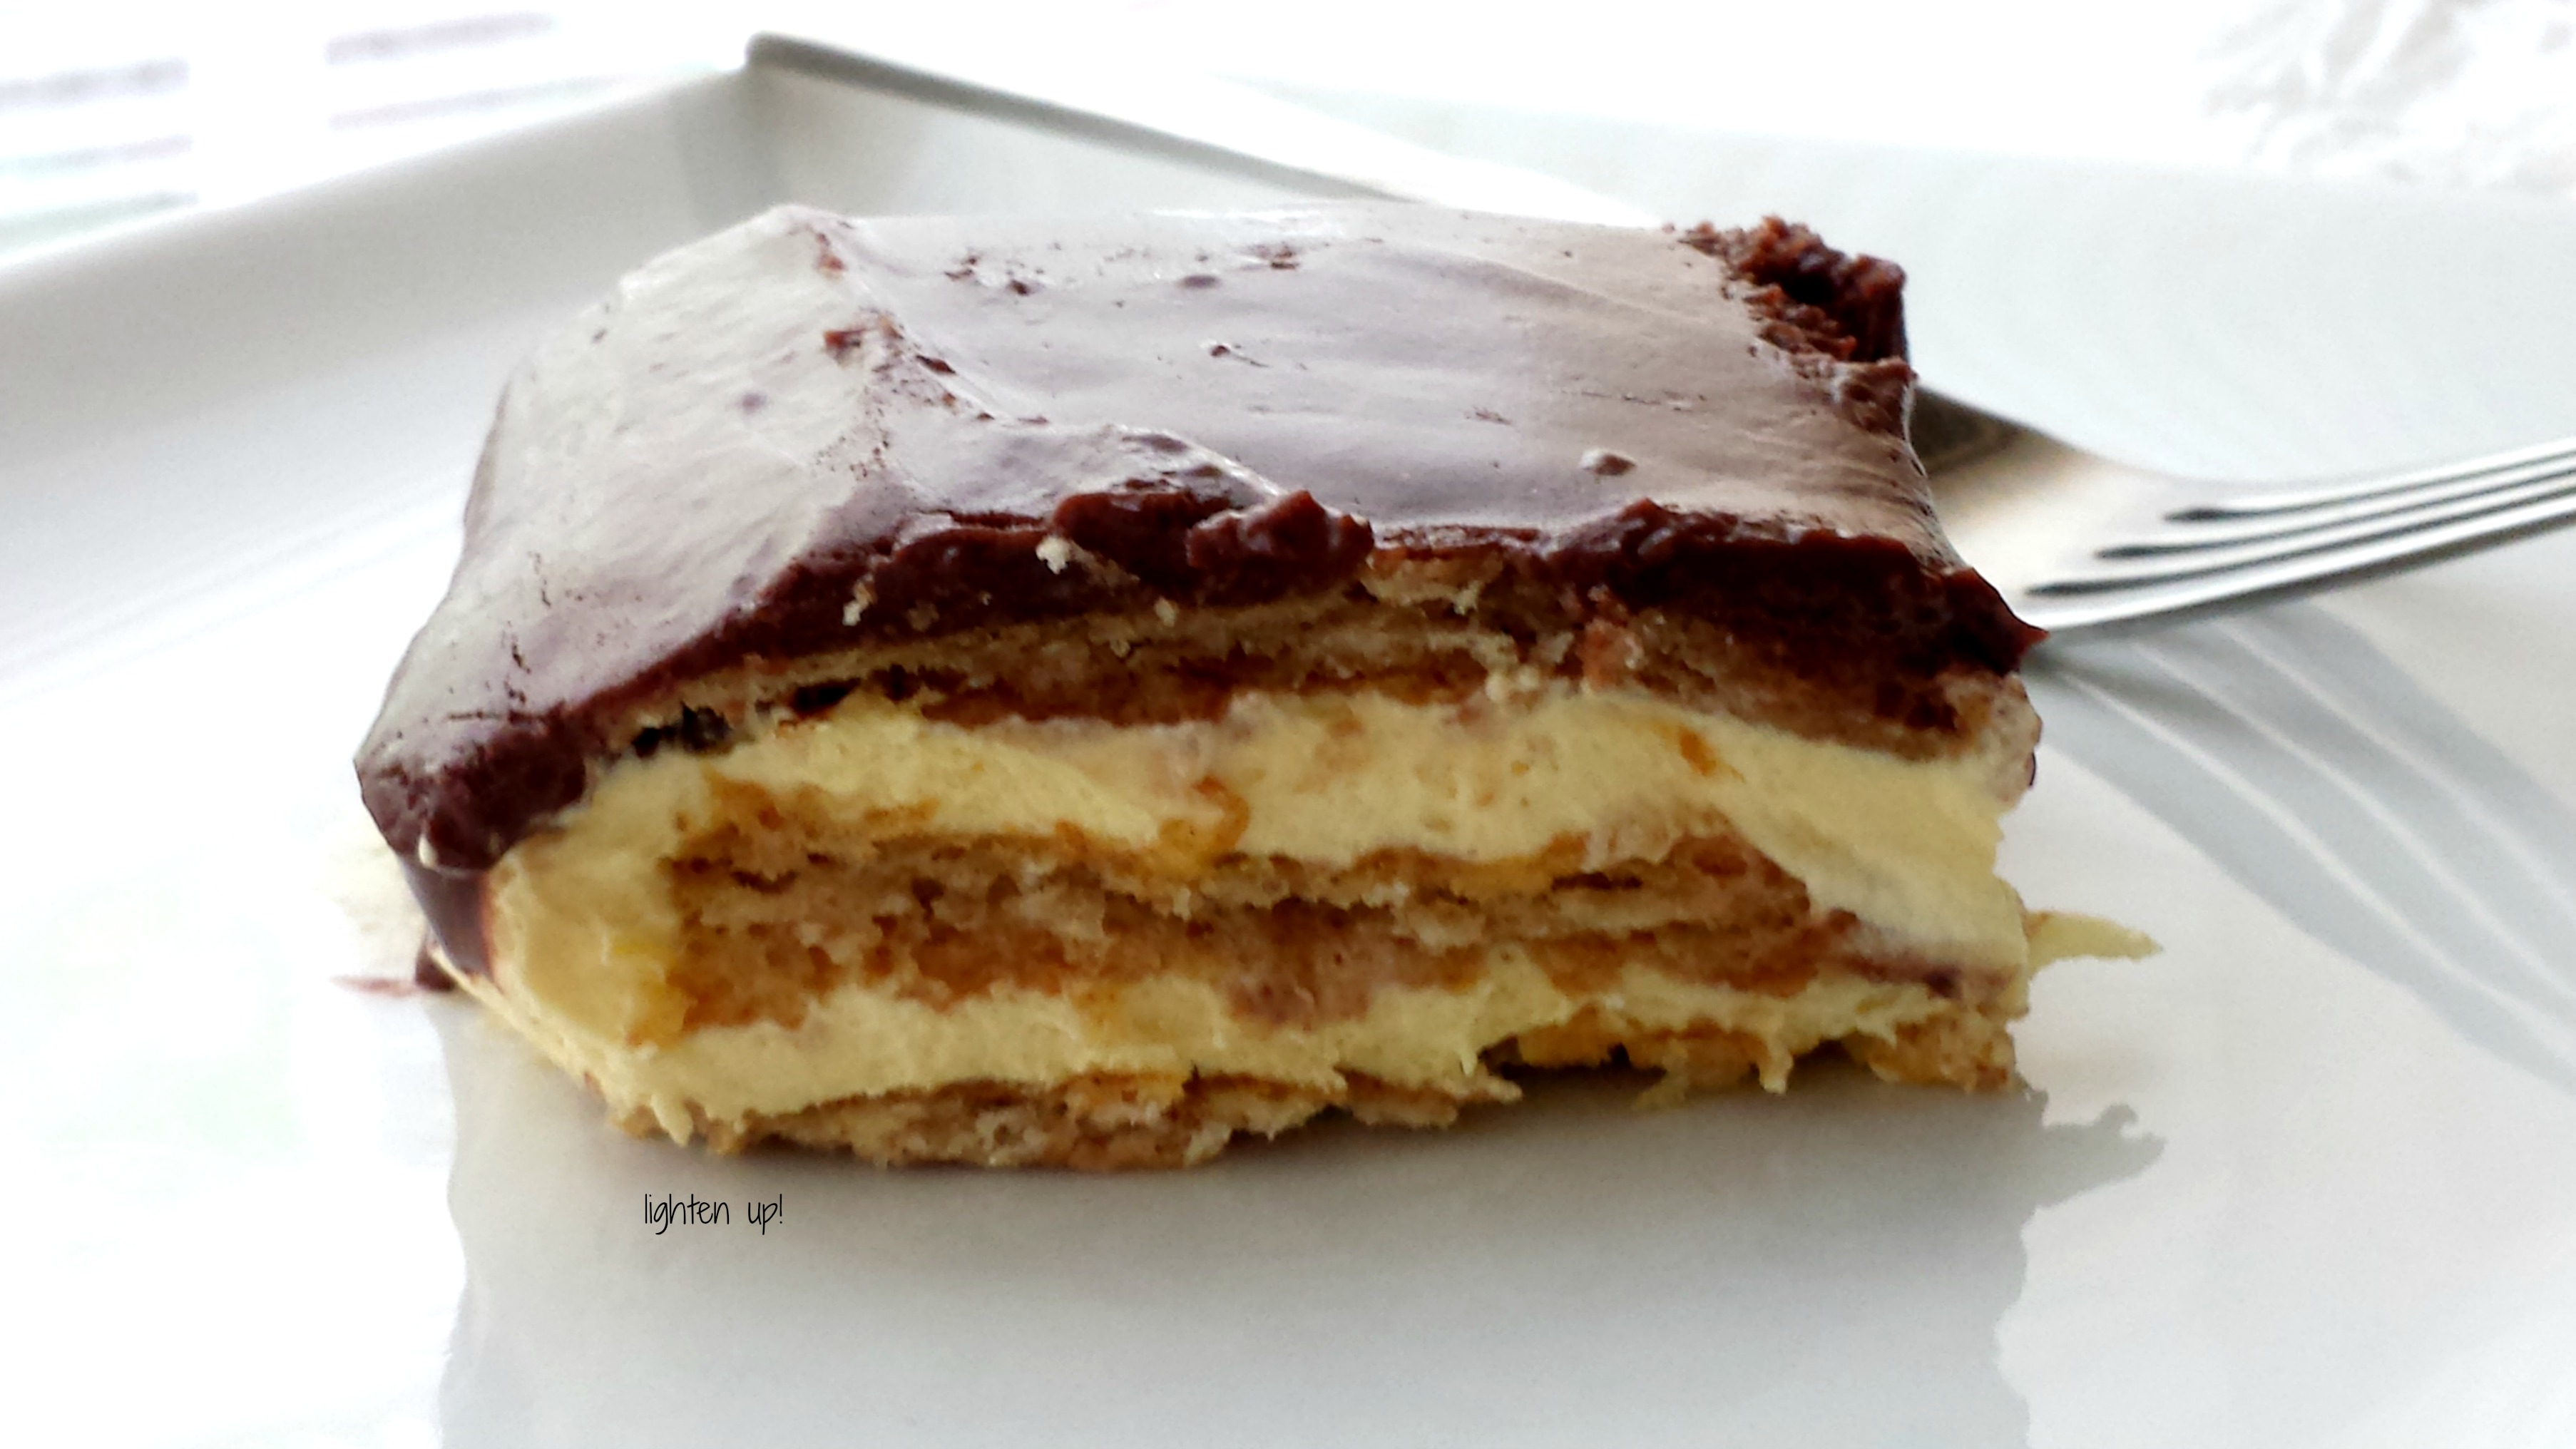 Images Of Chocolate Eclair Cake : Lightened-up no-bake chocolate eclair cake Lighten Up!